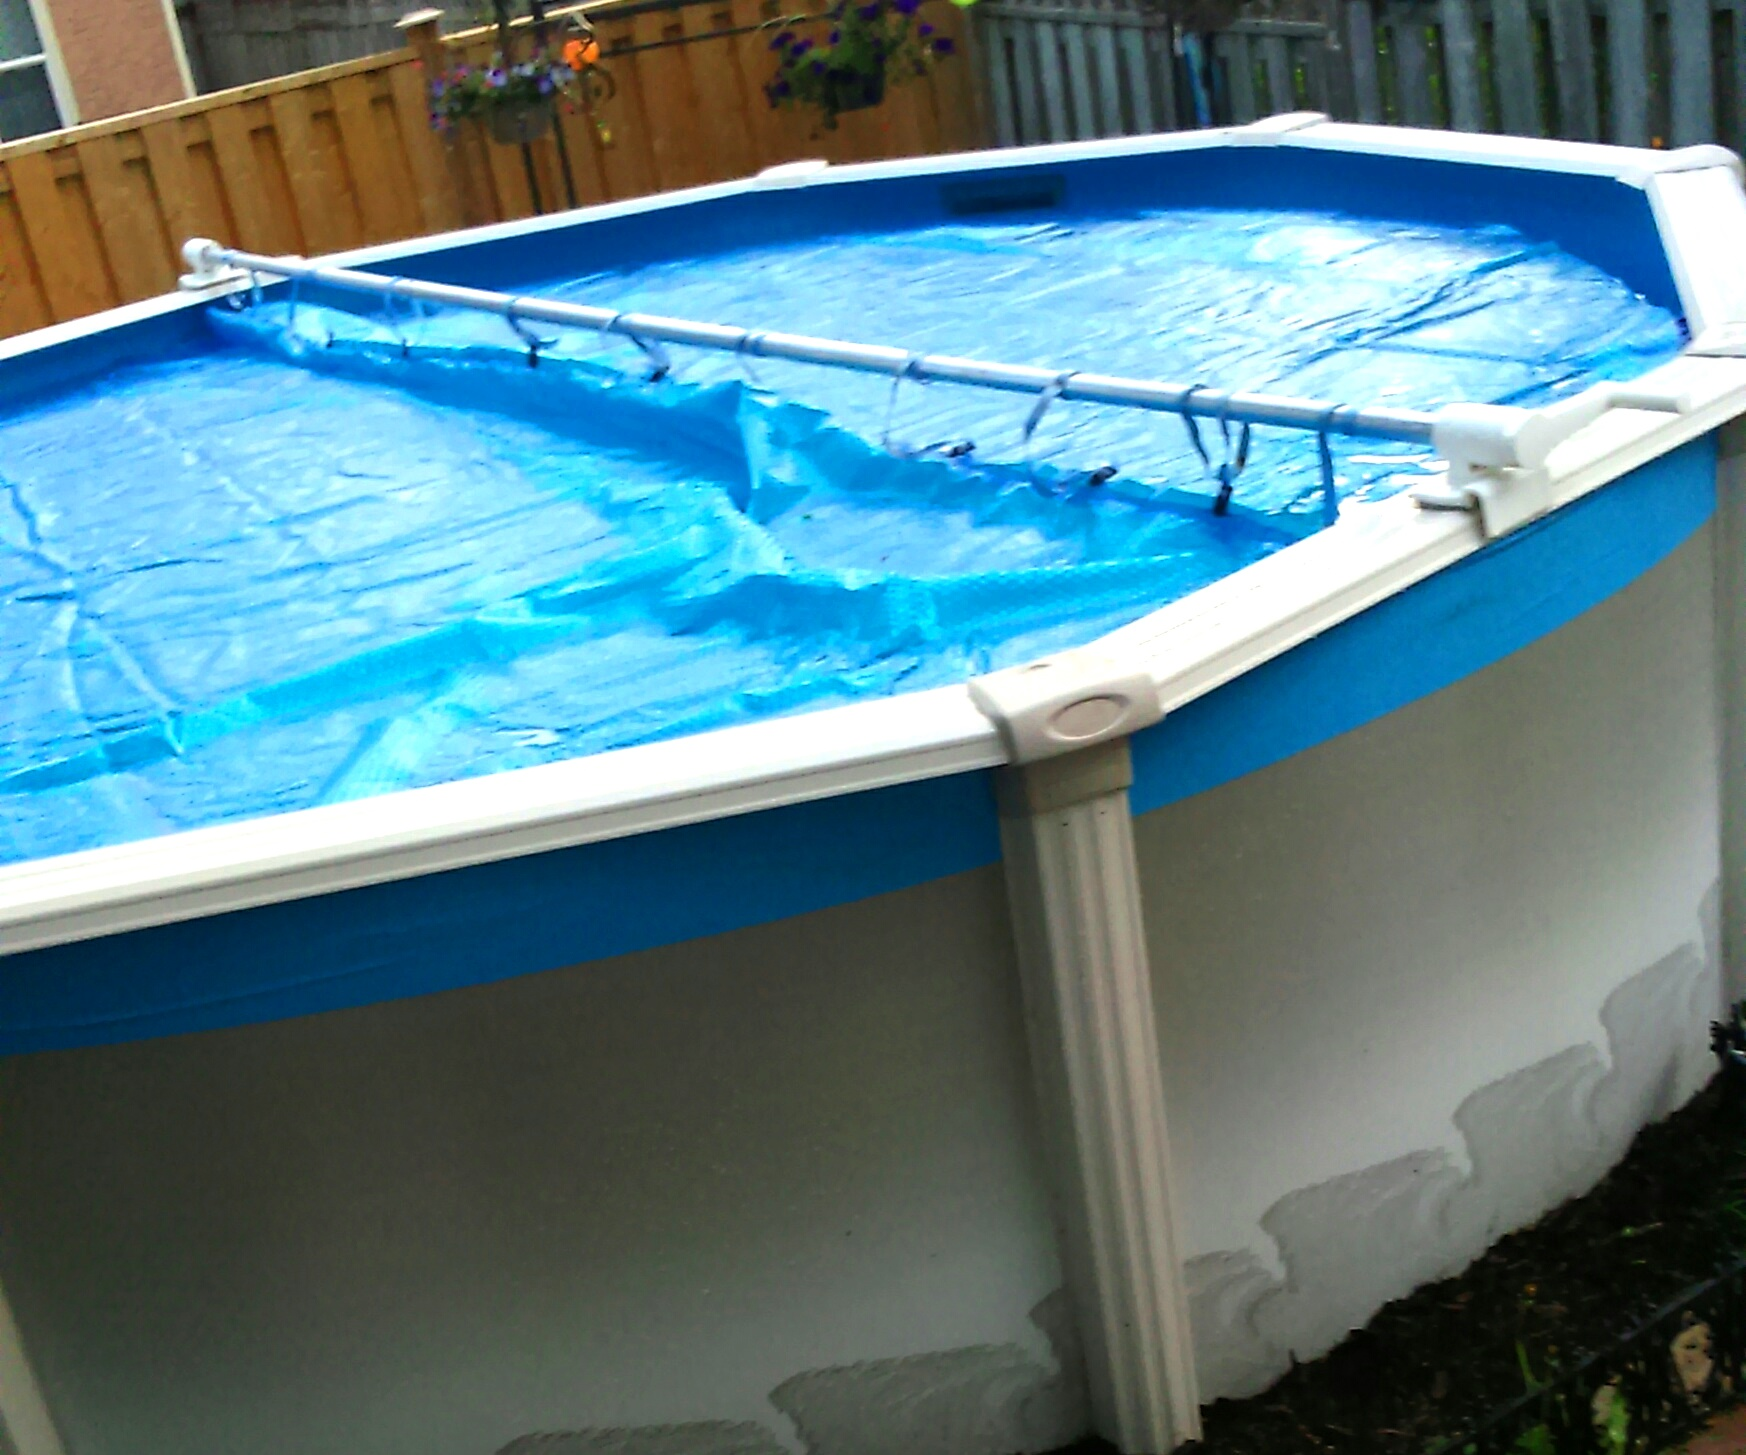 LILYAN'S 15' ABOVE GROUND POOL (11)